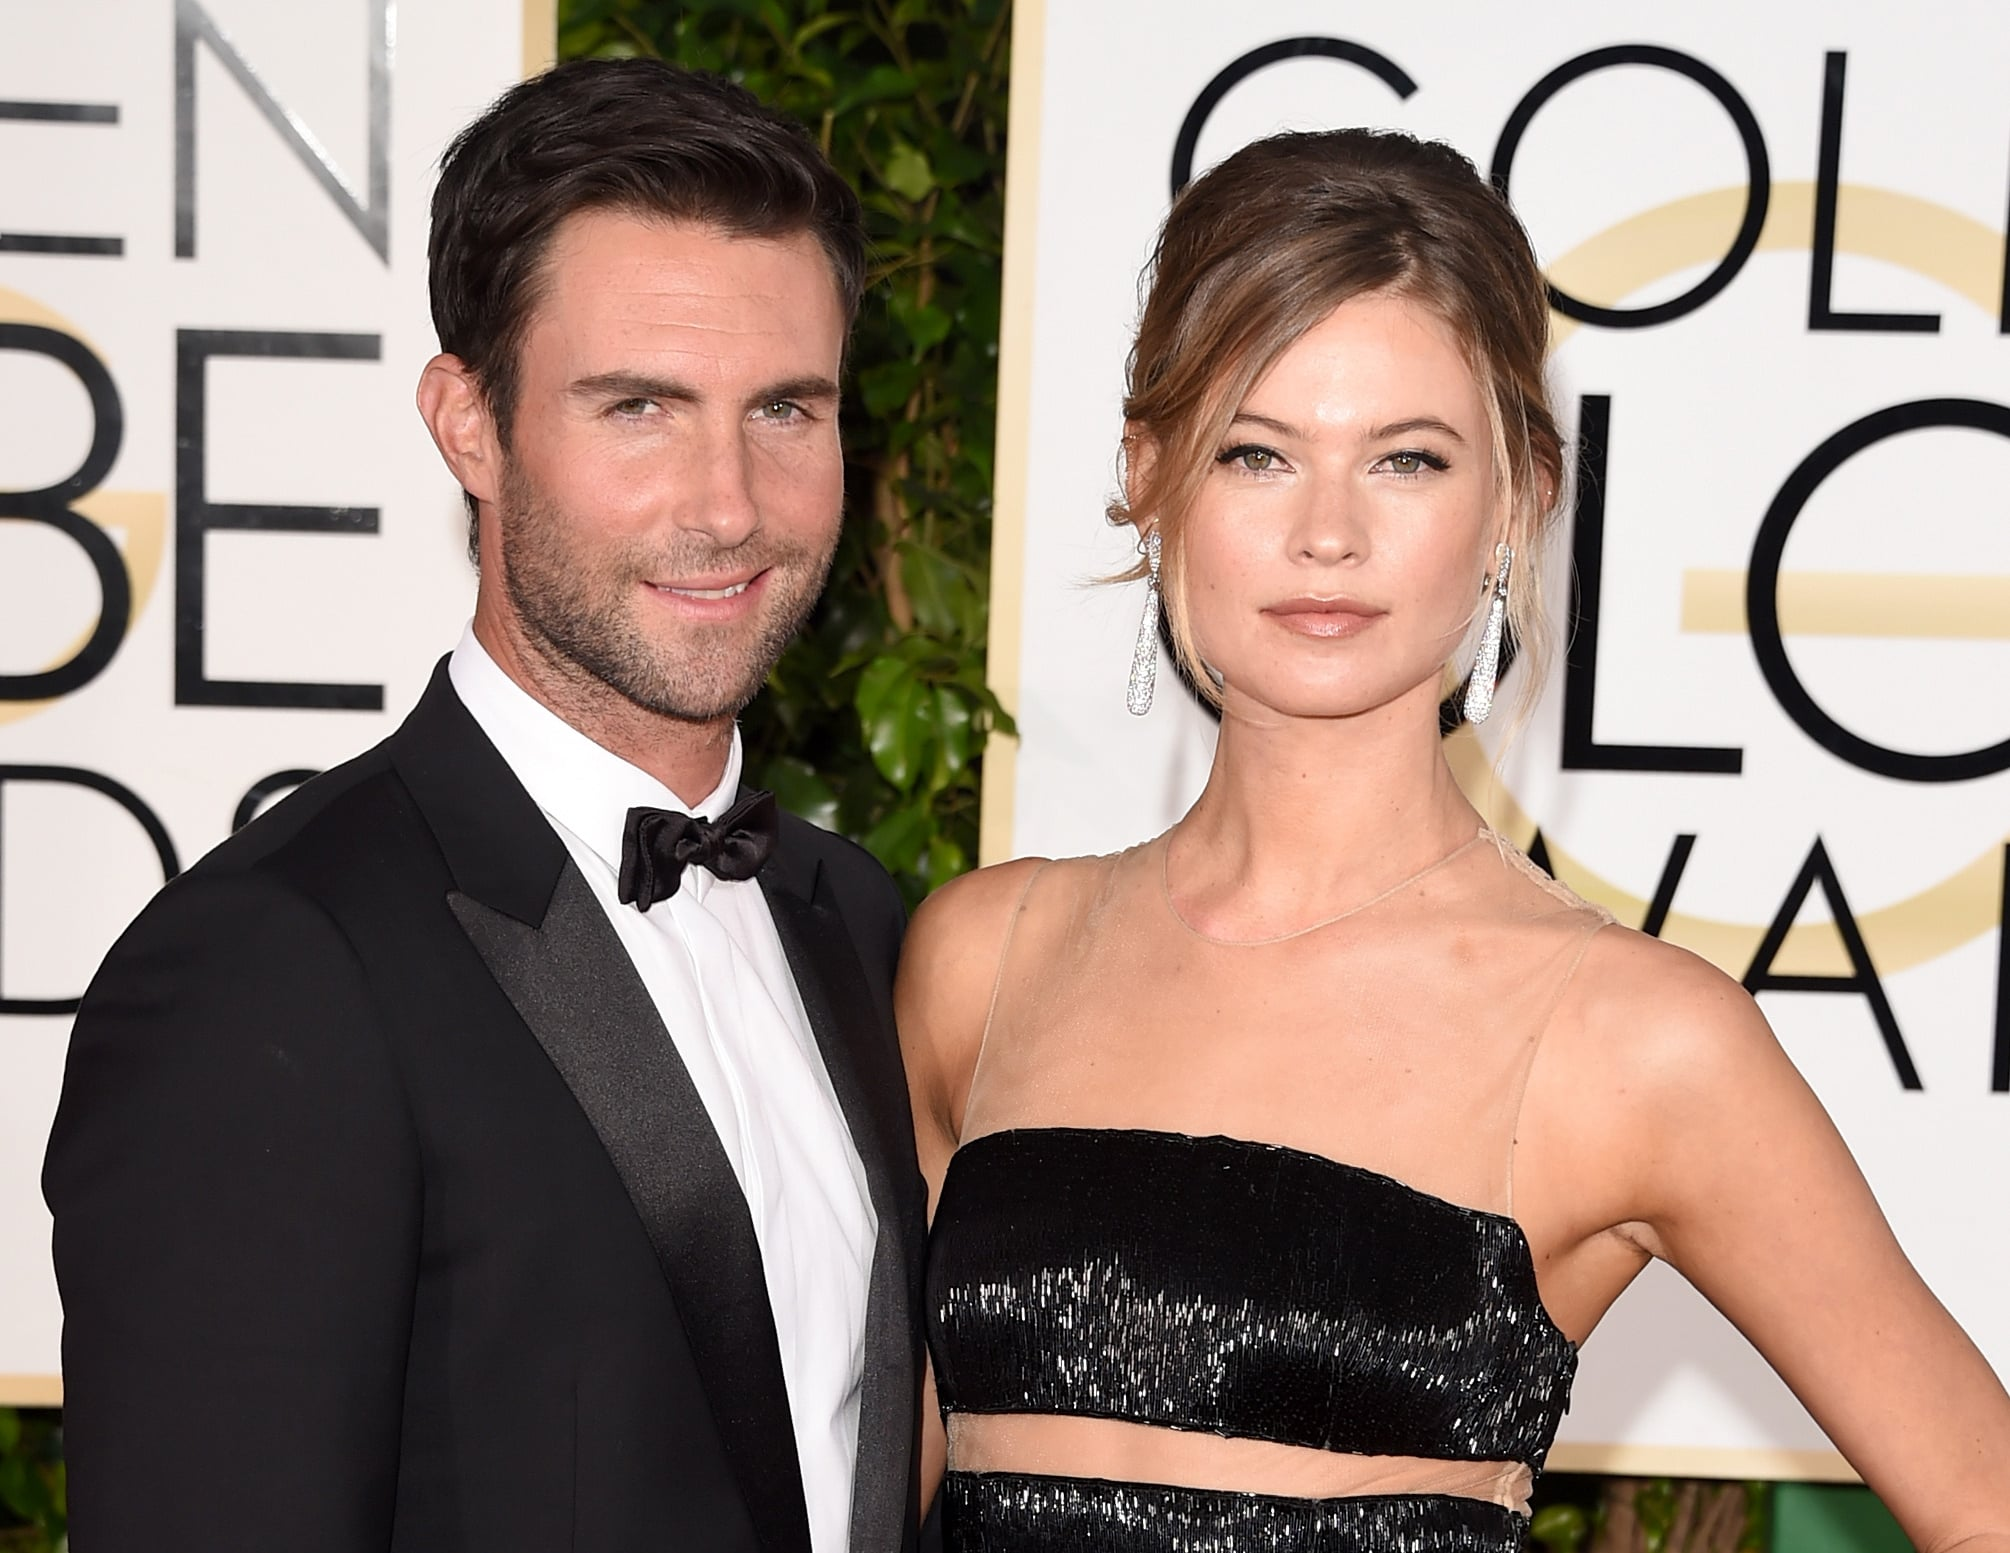 Adam Levine and Behati Prinsloo Welcome Daughter Geo!